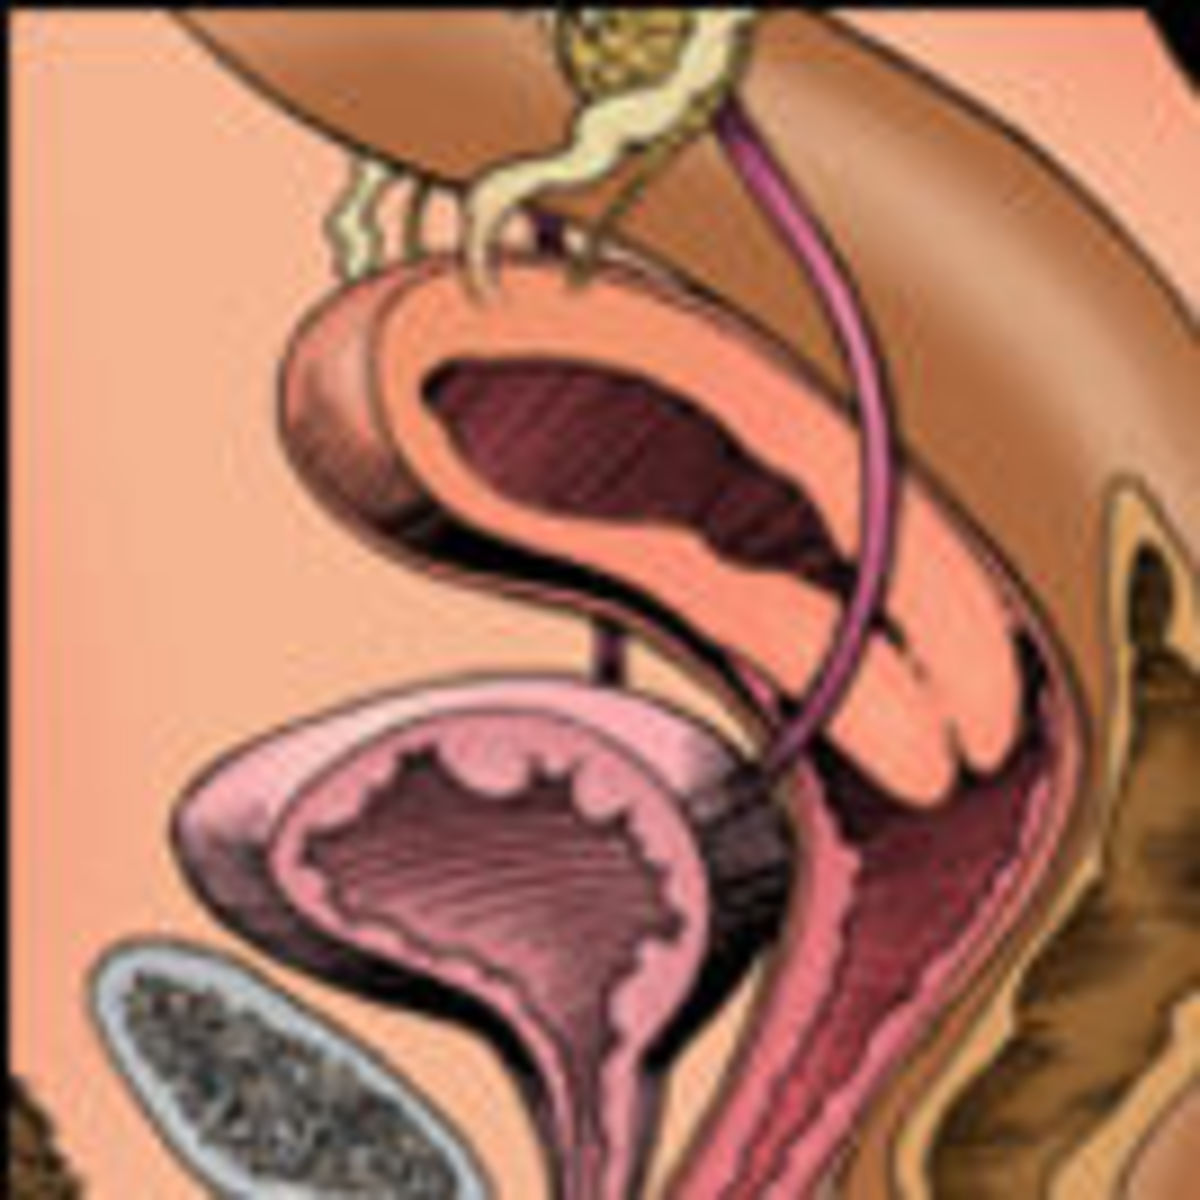 A Tipped Uterus and Intercourse Positions | Psychology Today